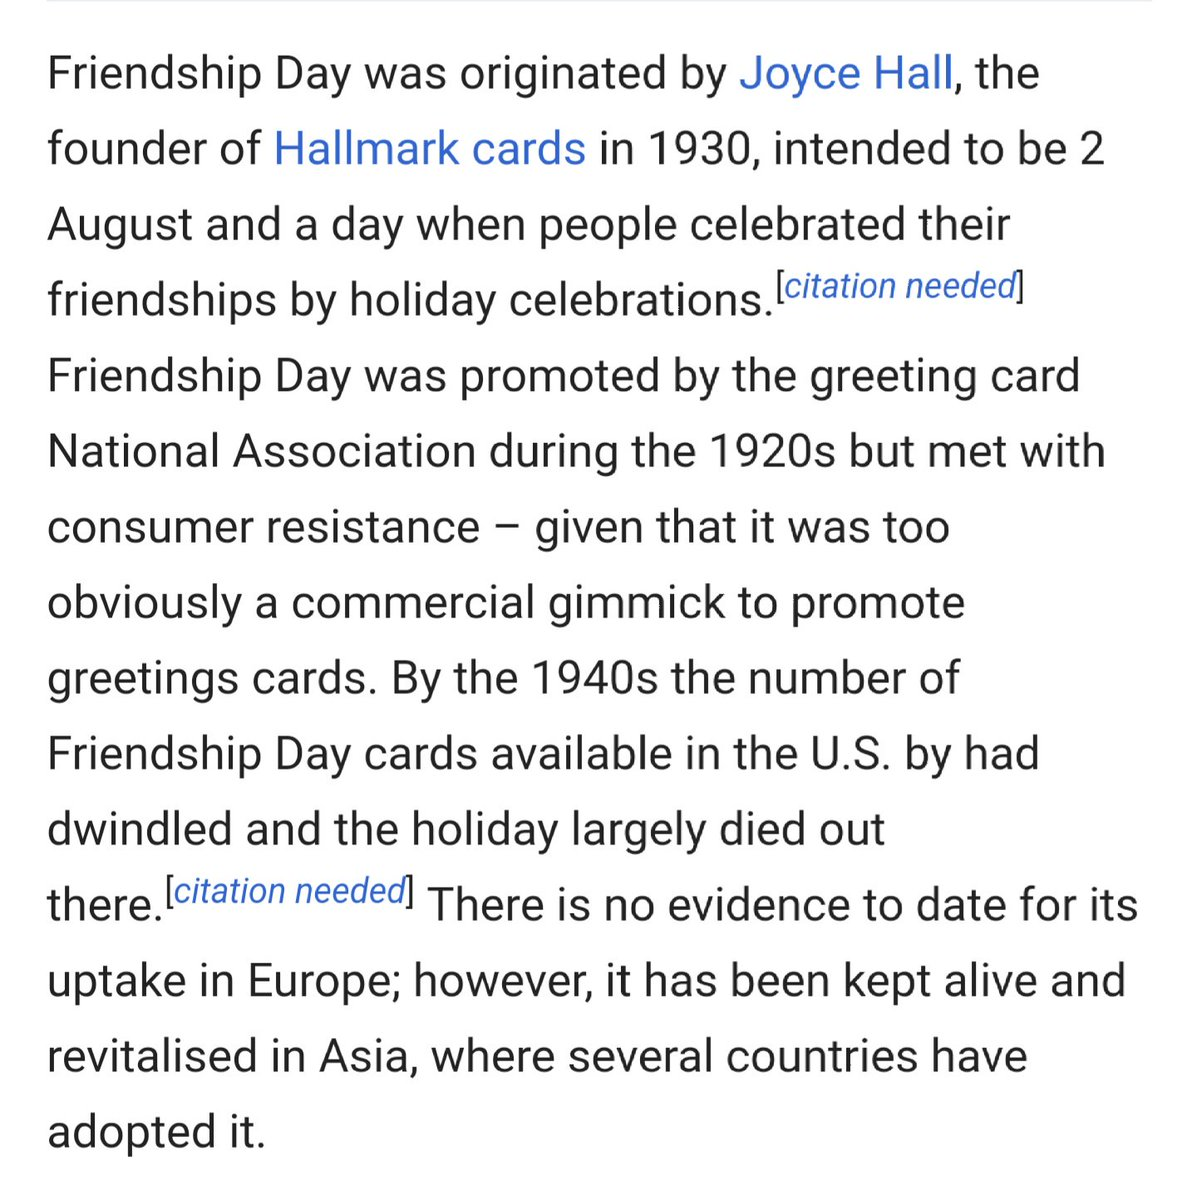 Abhishek Mishra On Twitter Friendship Day Was Promoted During